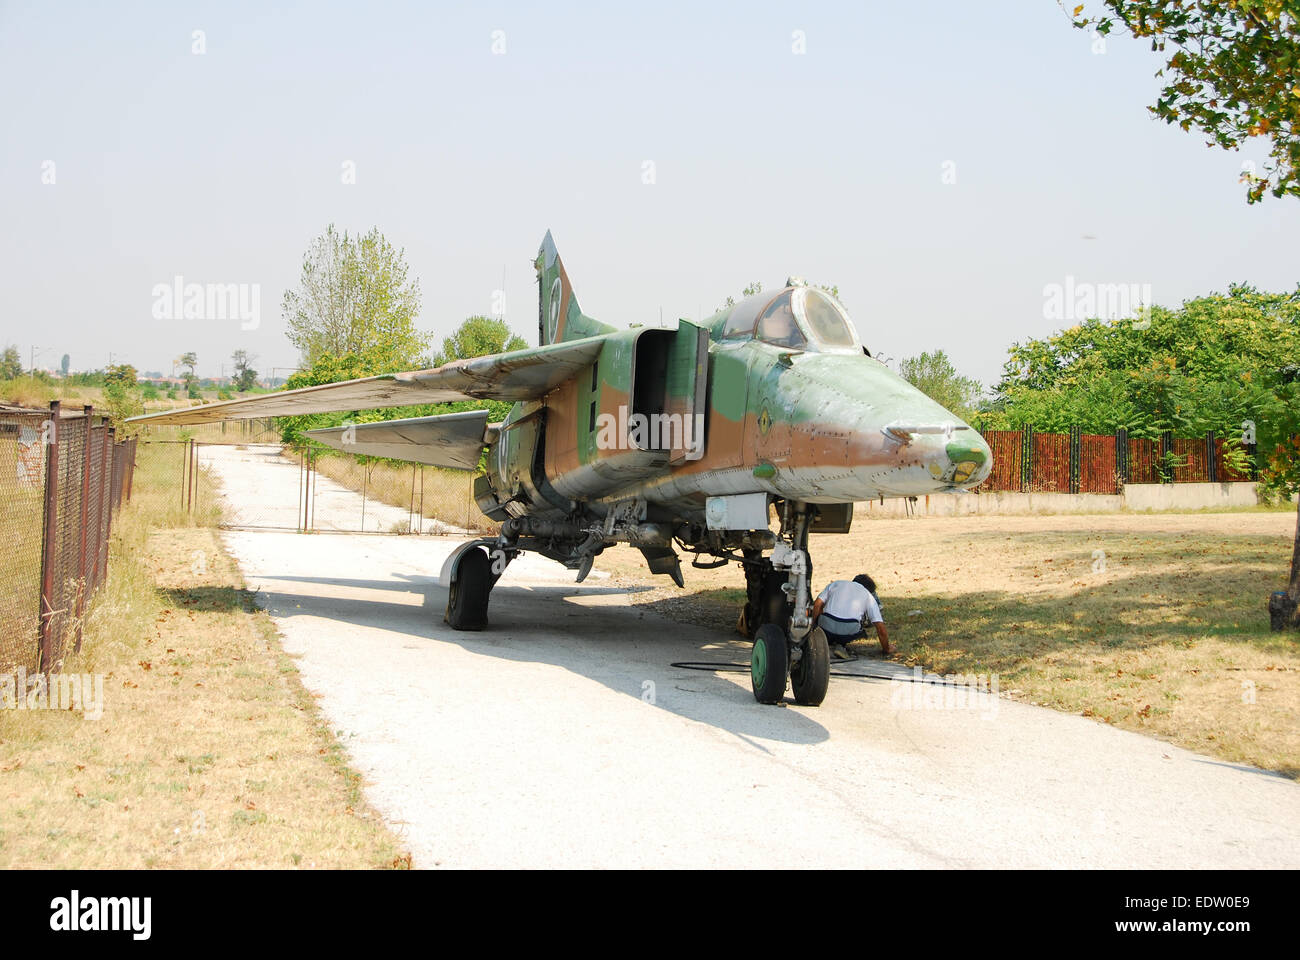 Soviet era Mig-23 fighter jet used in the Bulgarian Air Force - Stock Image